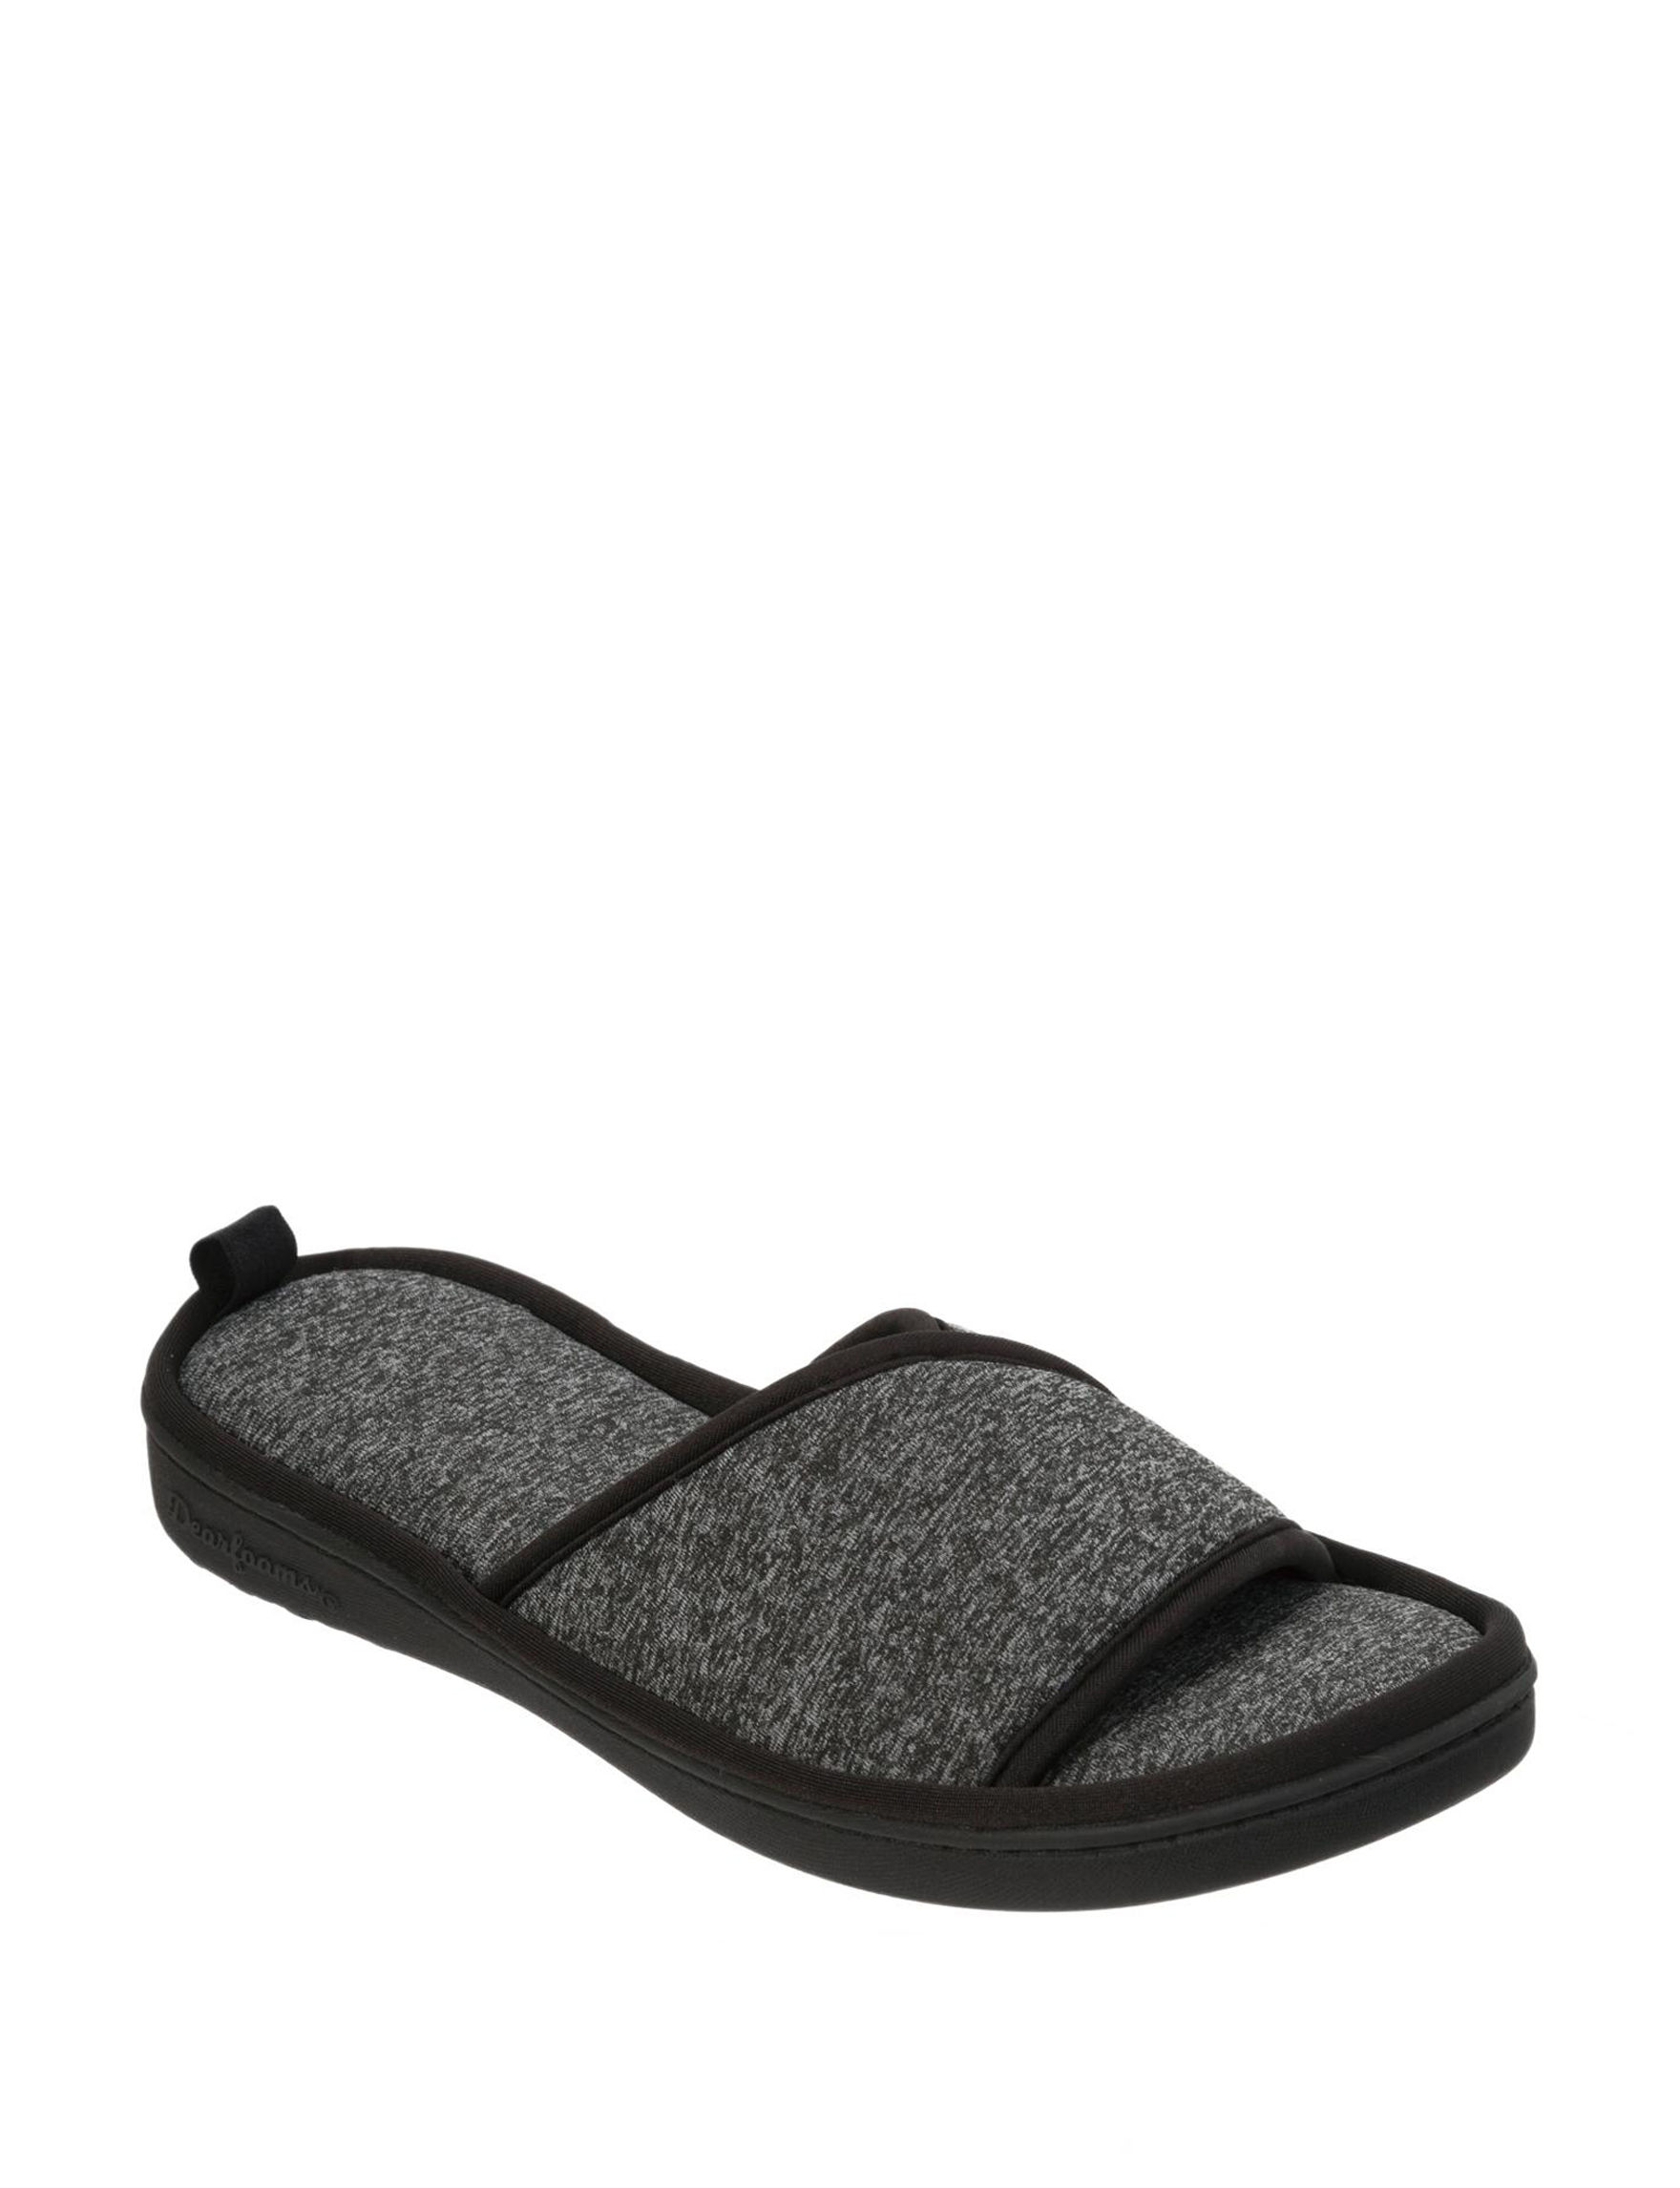 Dearfoam Black Slipper Shoes